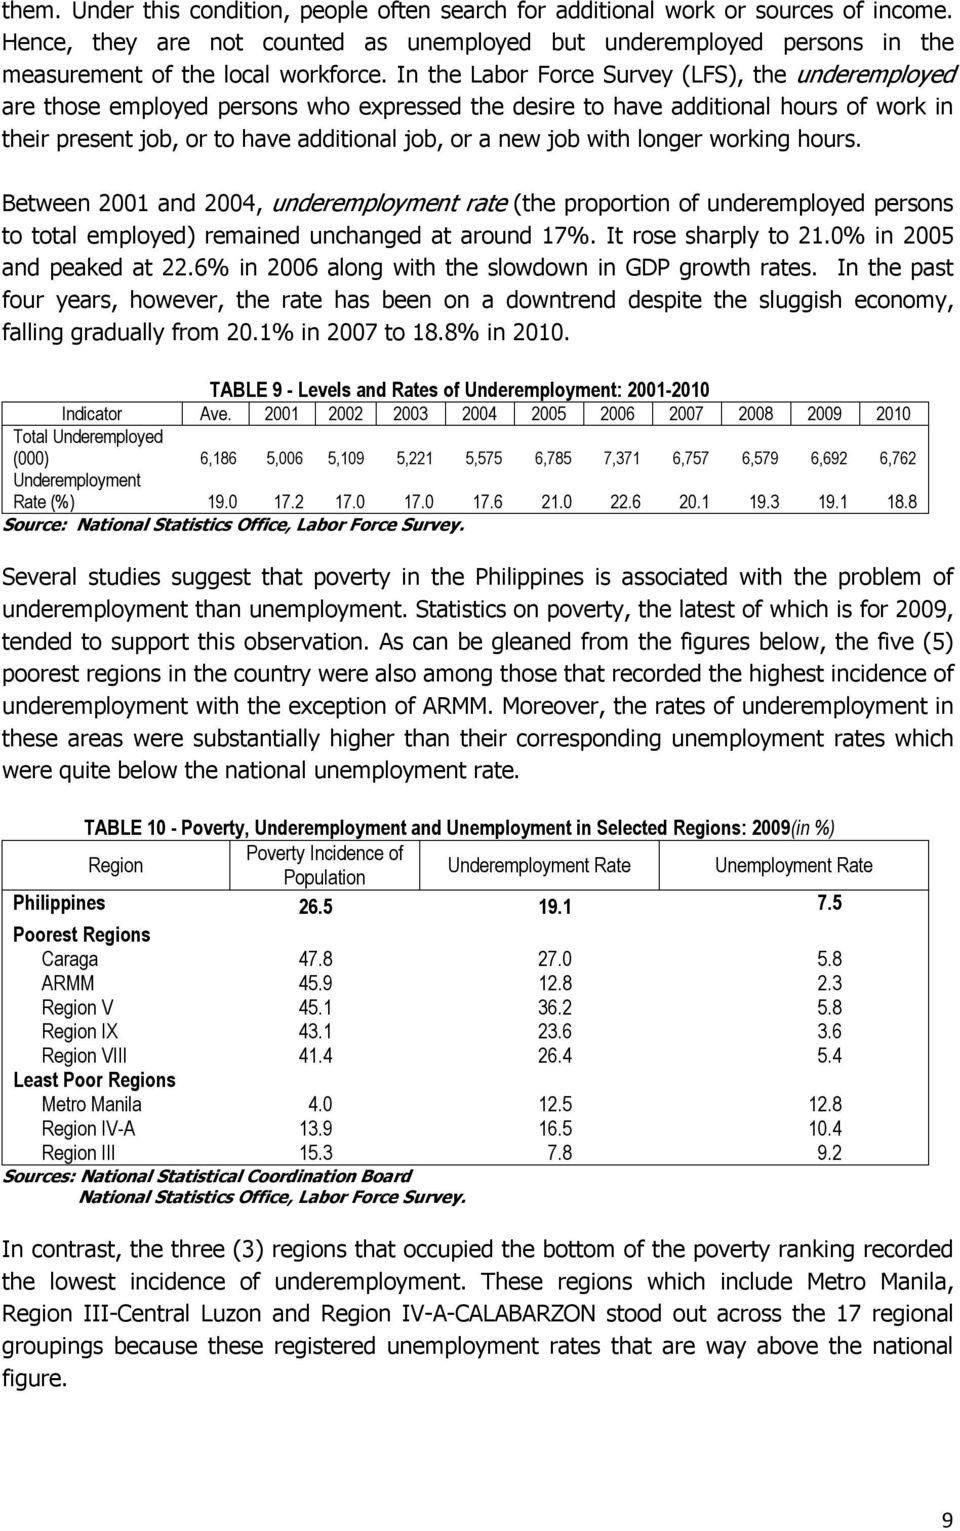 with longer working hours. Between 2001 and 2004, underemployment rate (the proportion of underemployed persons to total employed) remained unchanged at around 17%. It rose sharply to 21.